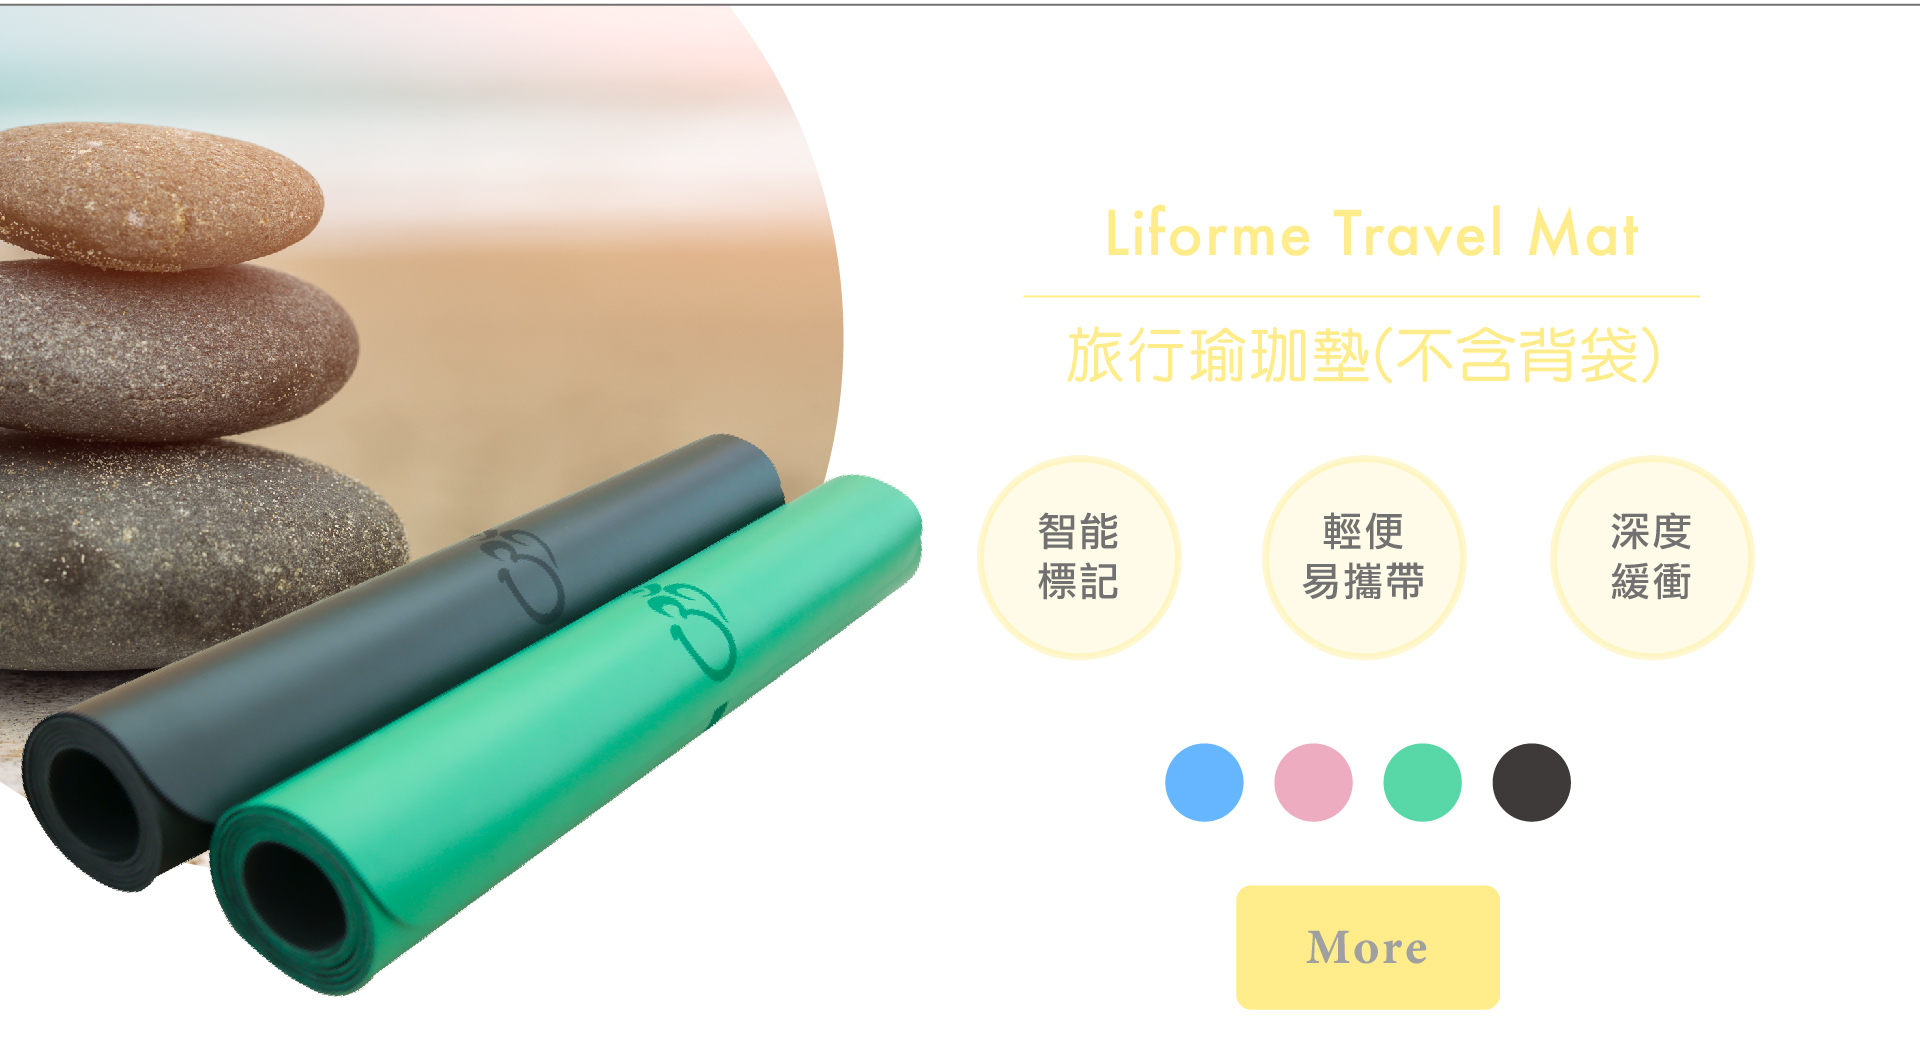 liforme travel mat 旅行瑜珈墊